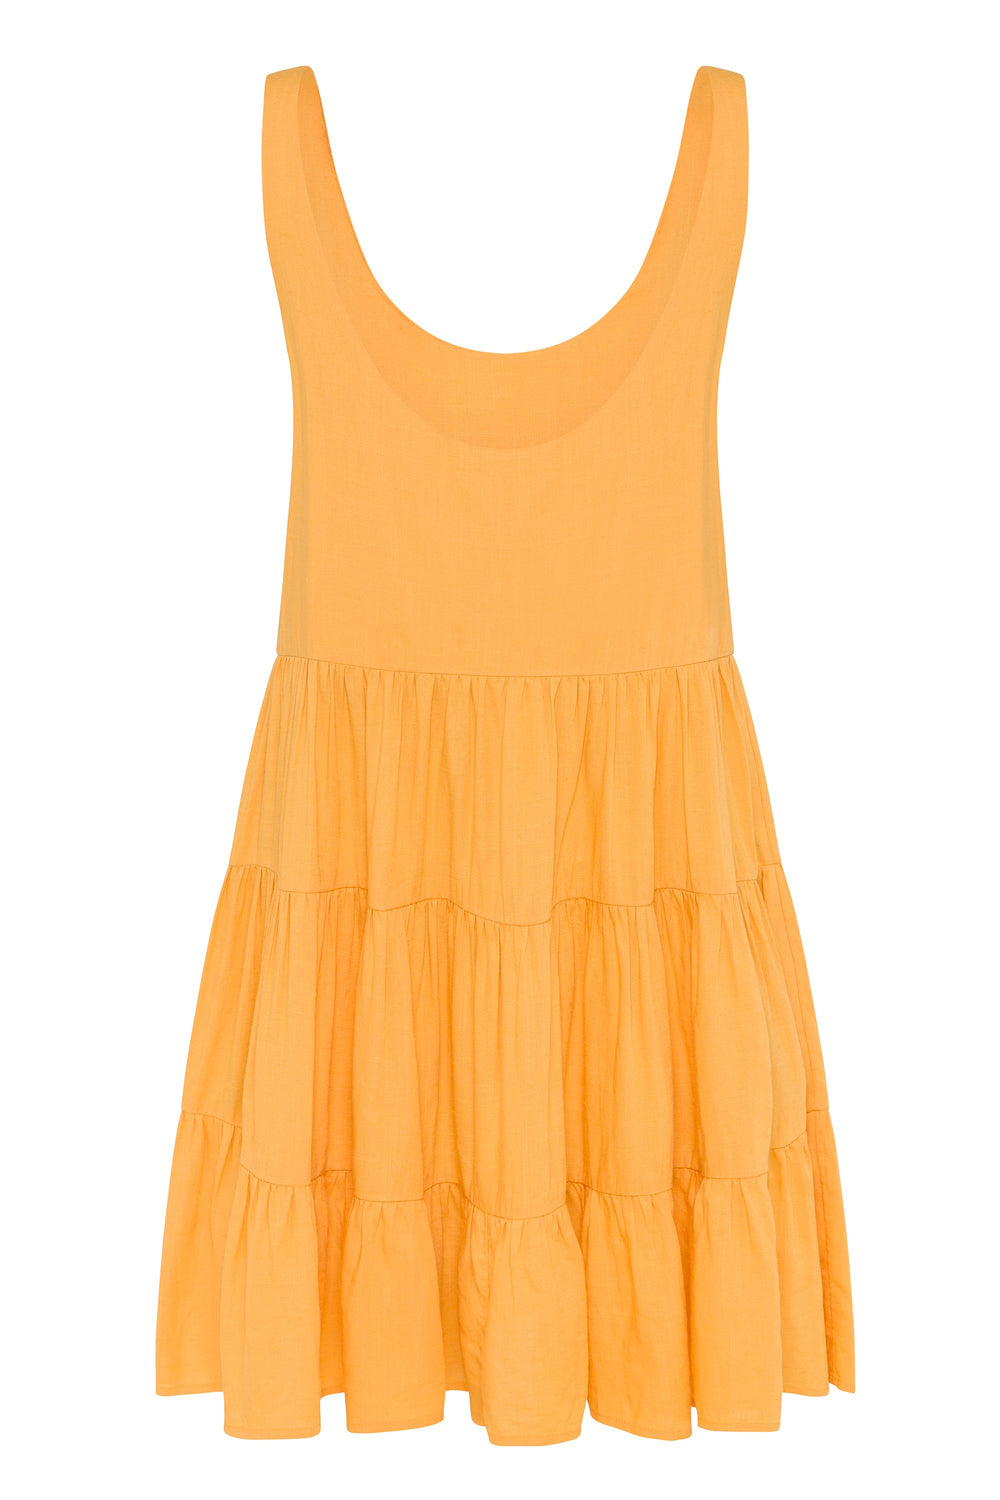 Winifred Dress In Mango